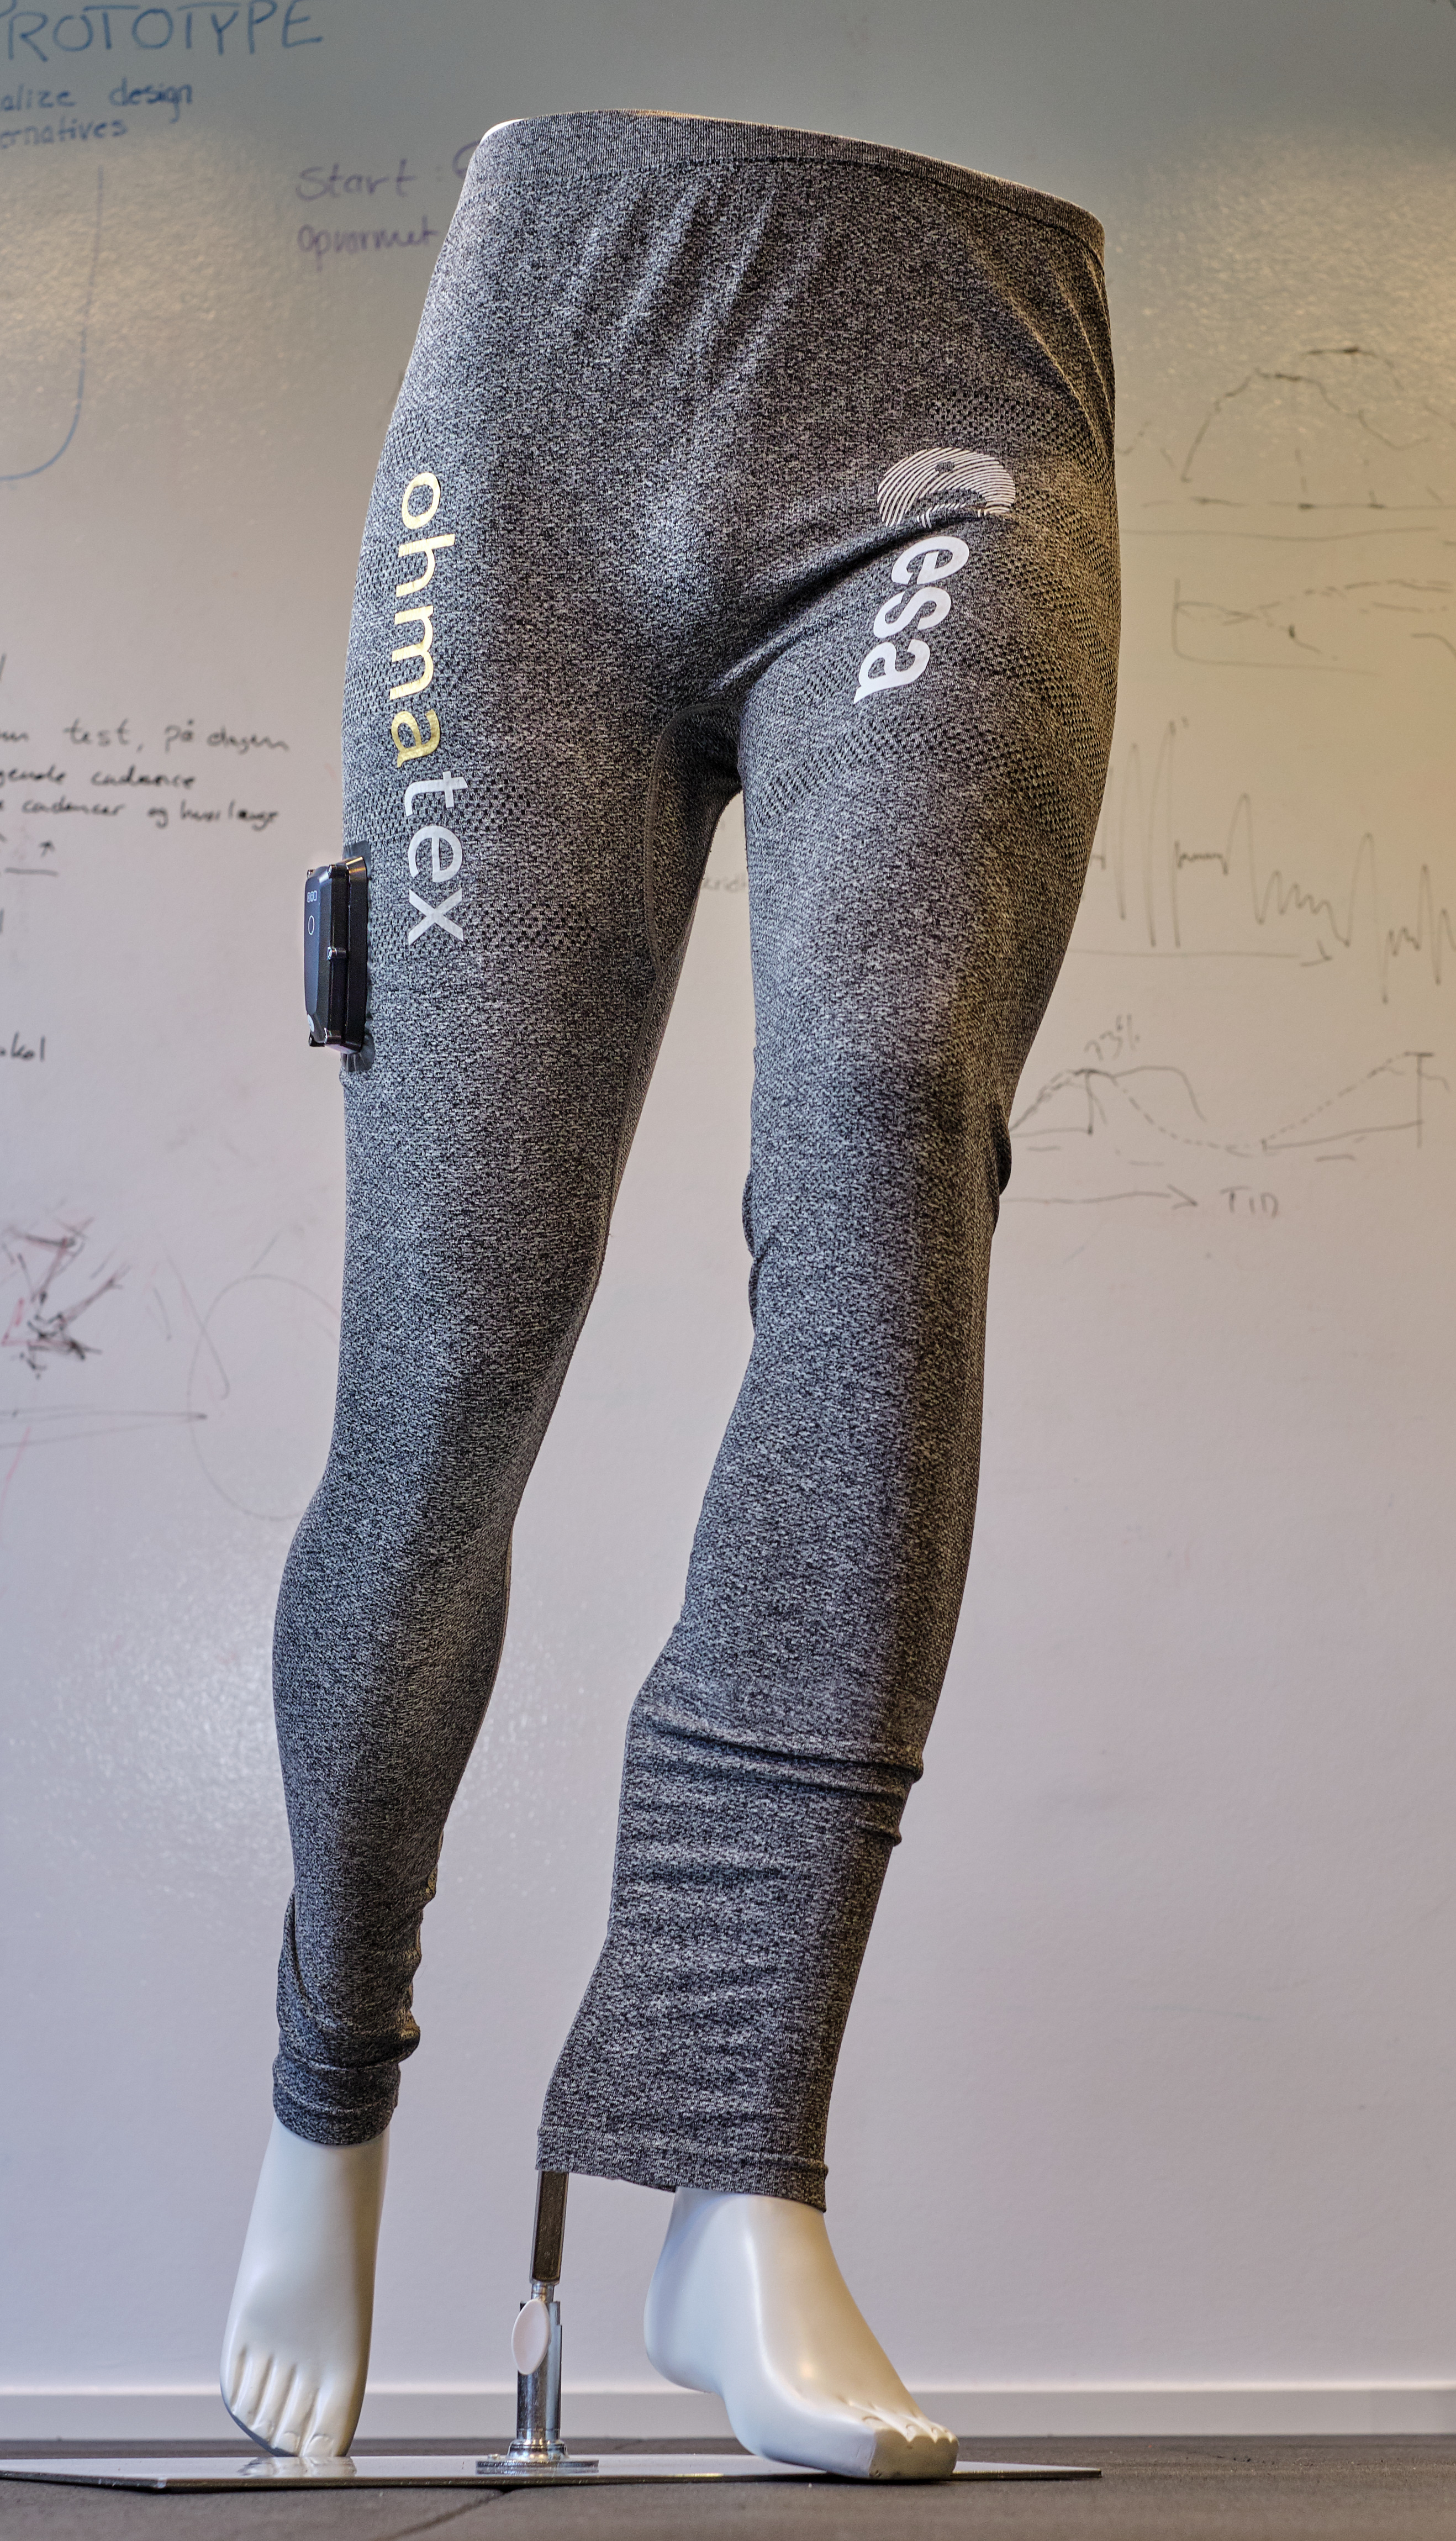 The training tights from Ohmatex.